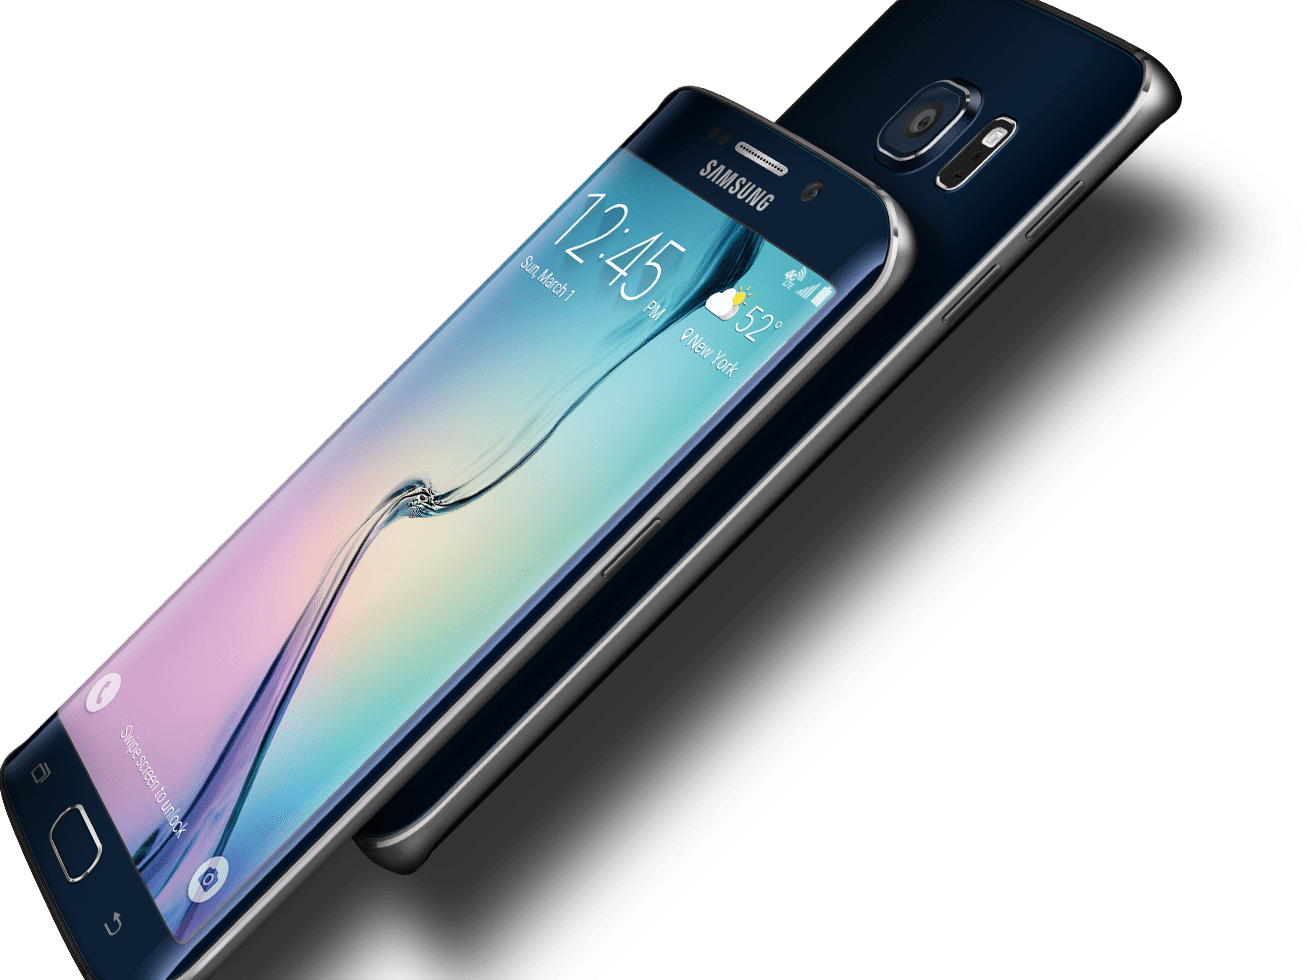 Samsung Galaxy S6 Edge Smartphone Review Reviews Note 32gb